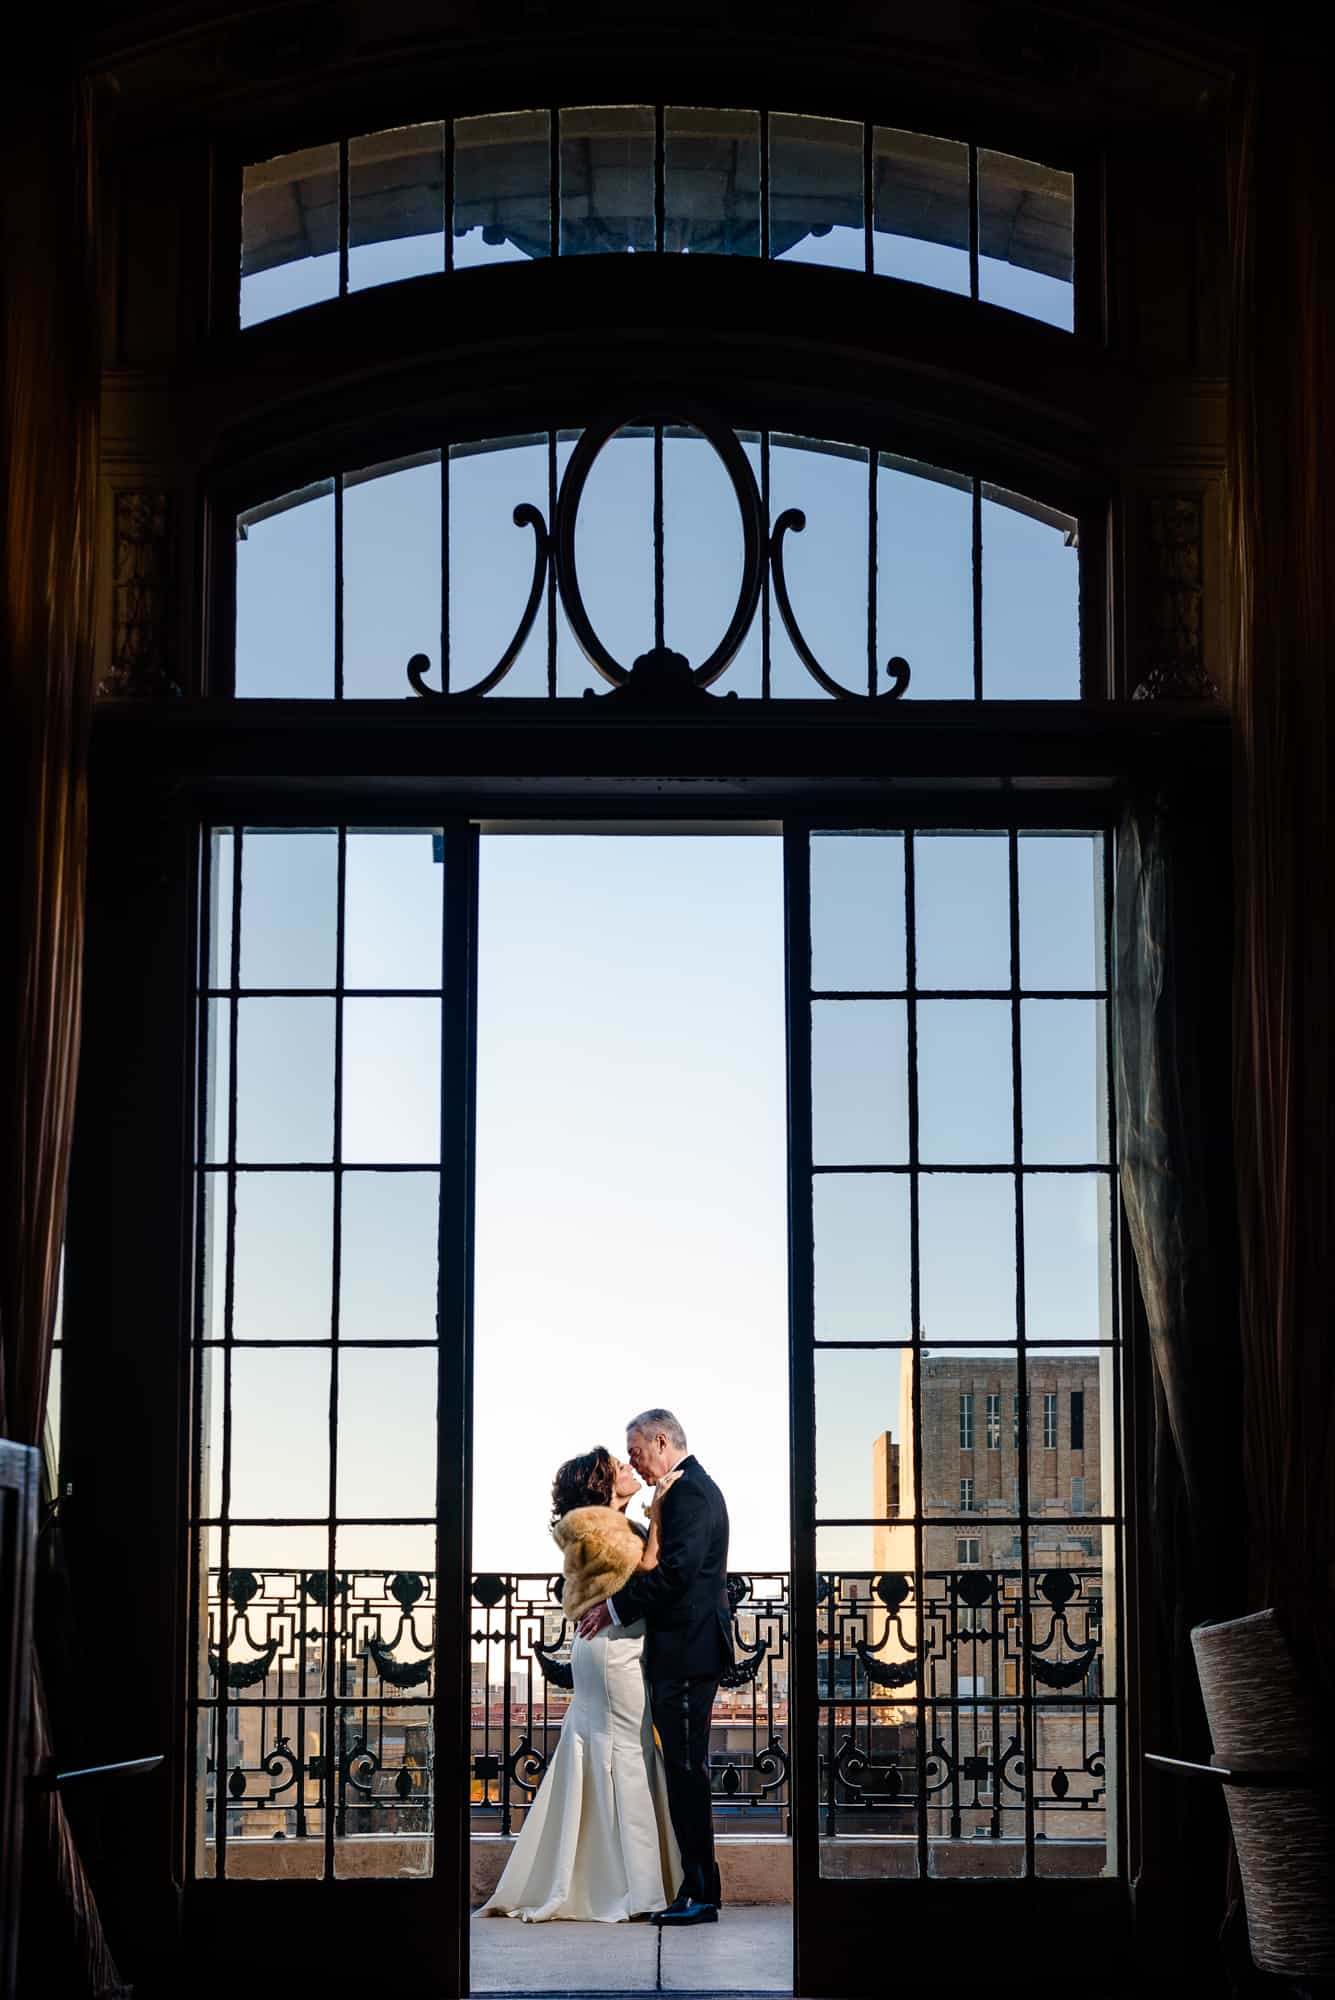 Bride and groom embracing in doorframe of the Bellevue Hotel